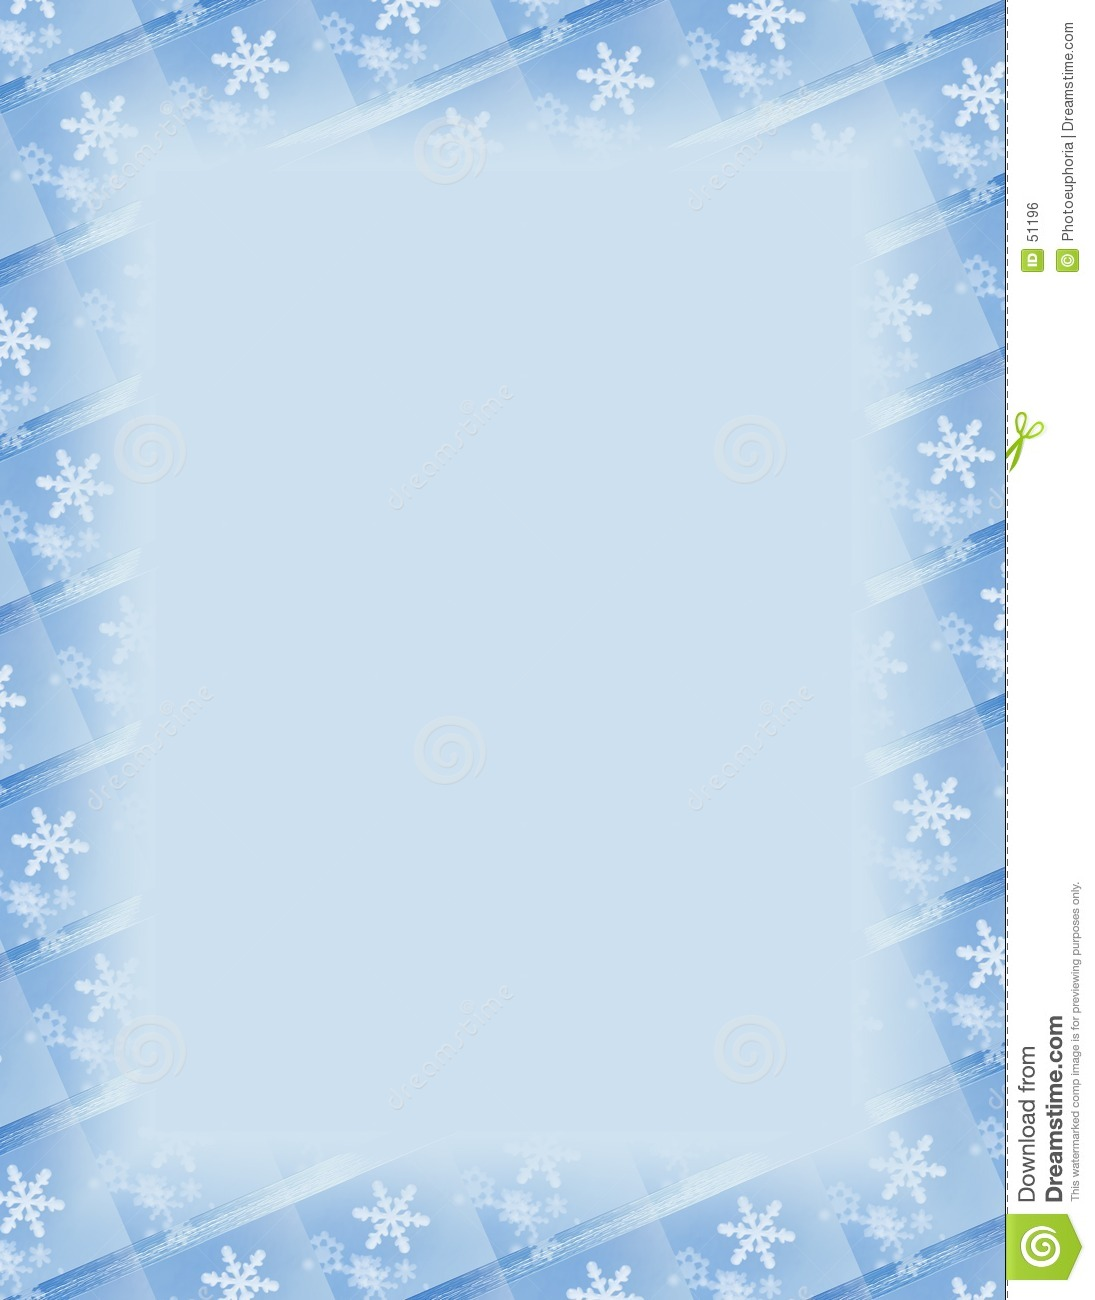 Free Snowflake Border | New Calendar Template Site